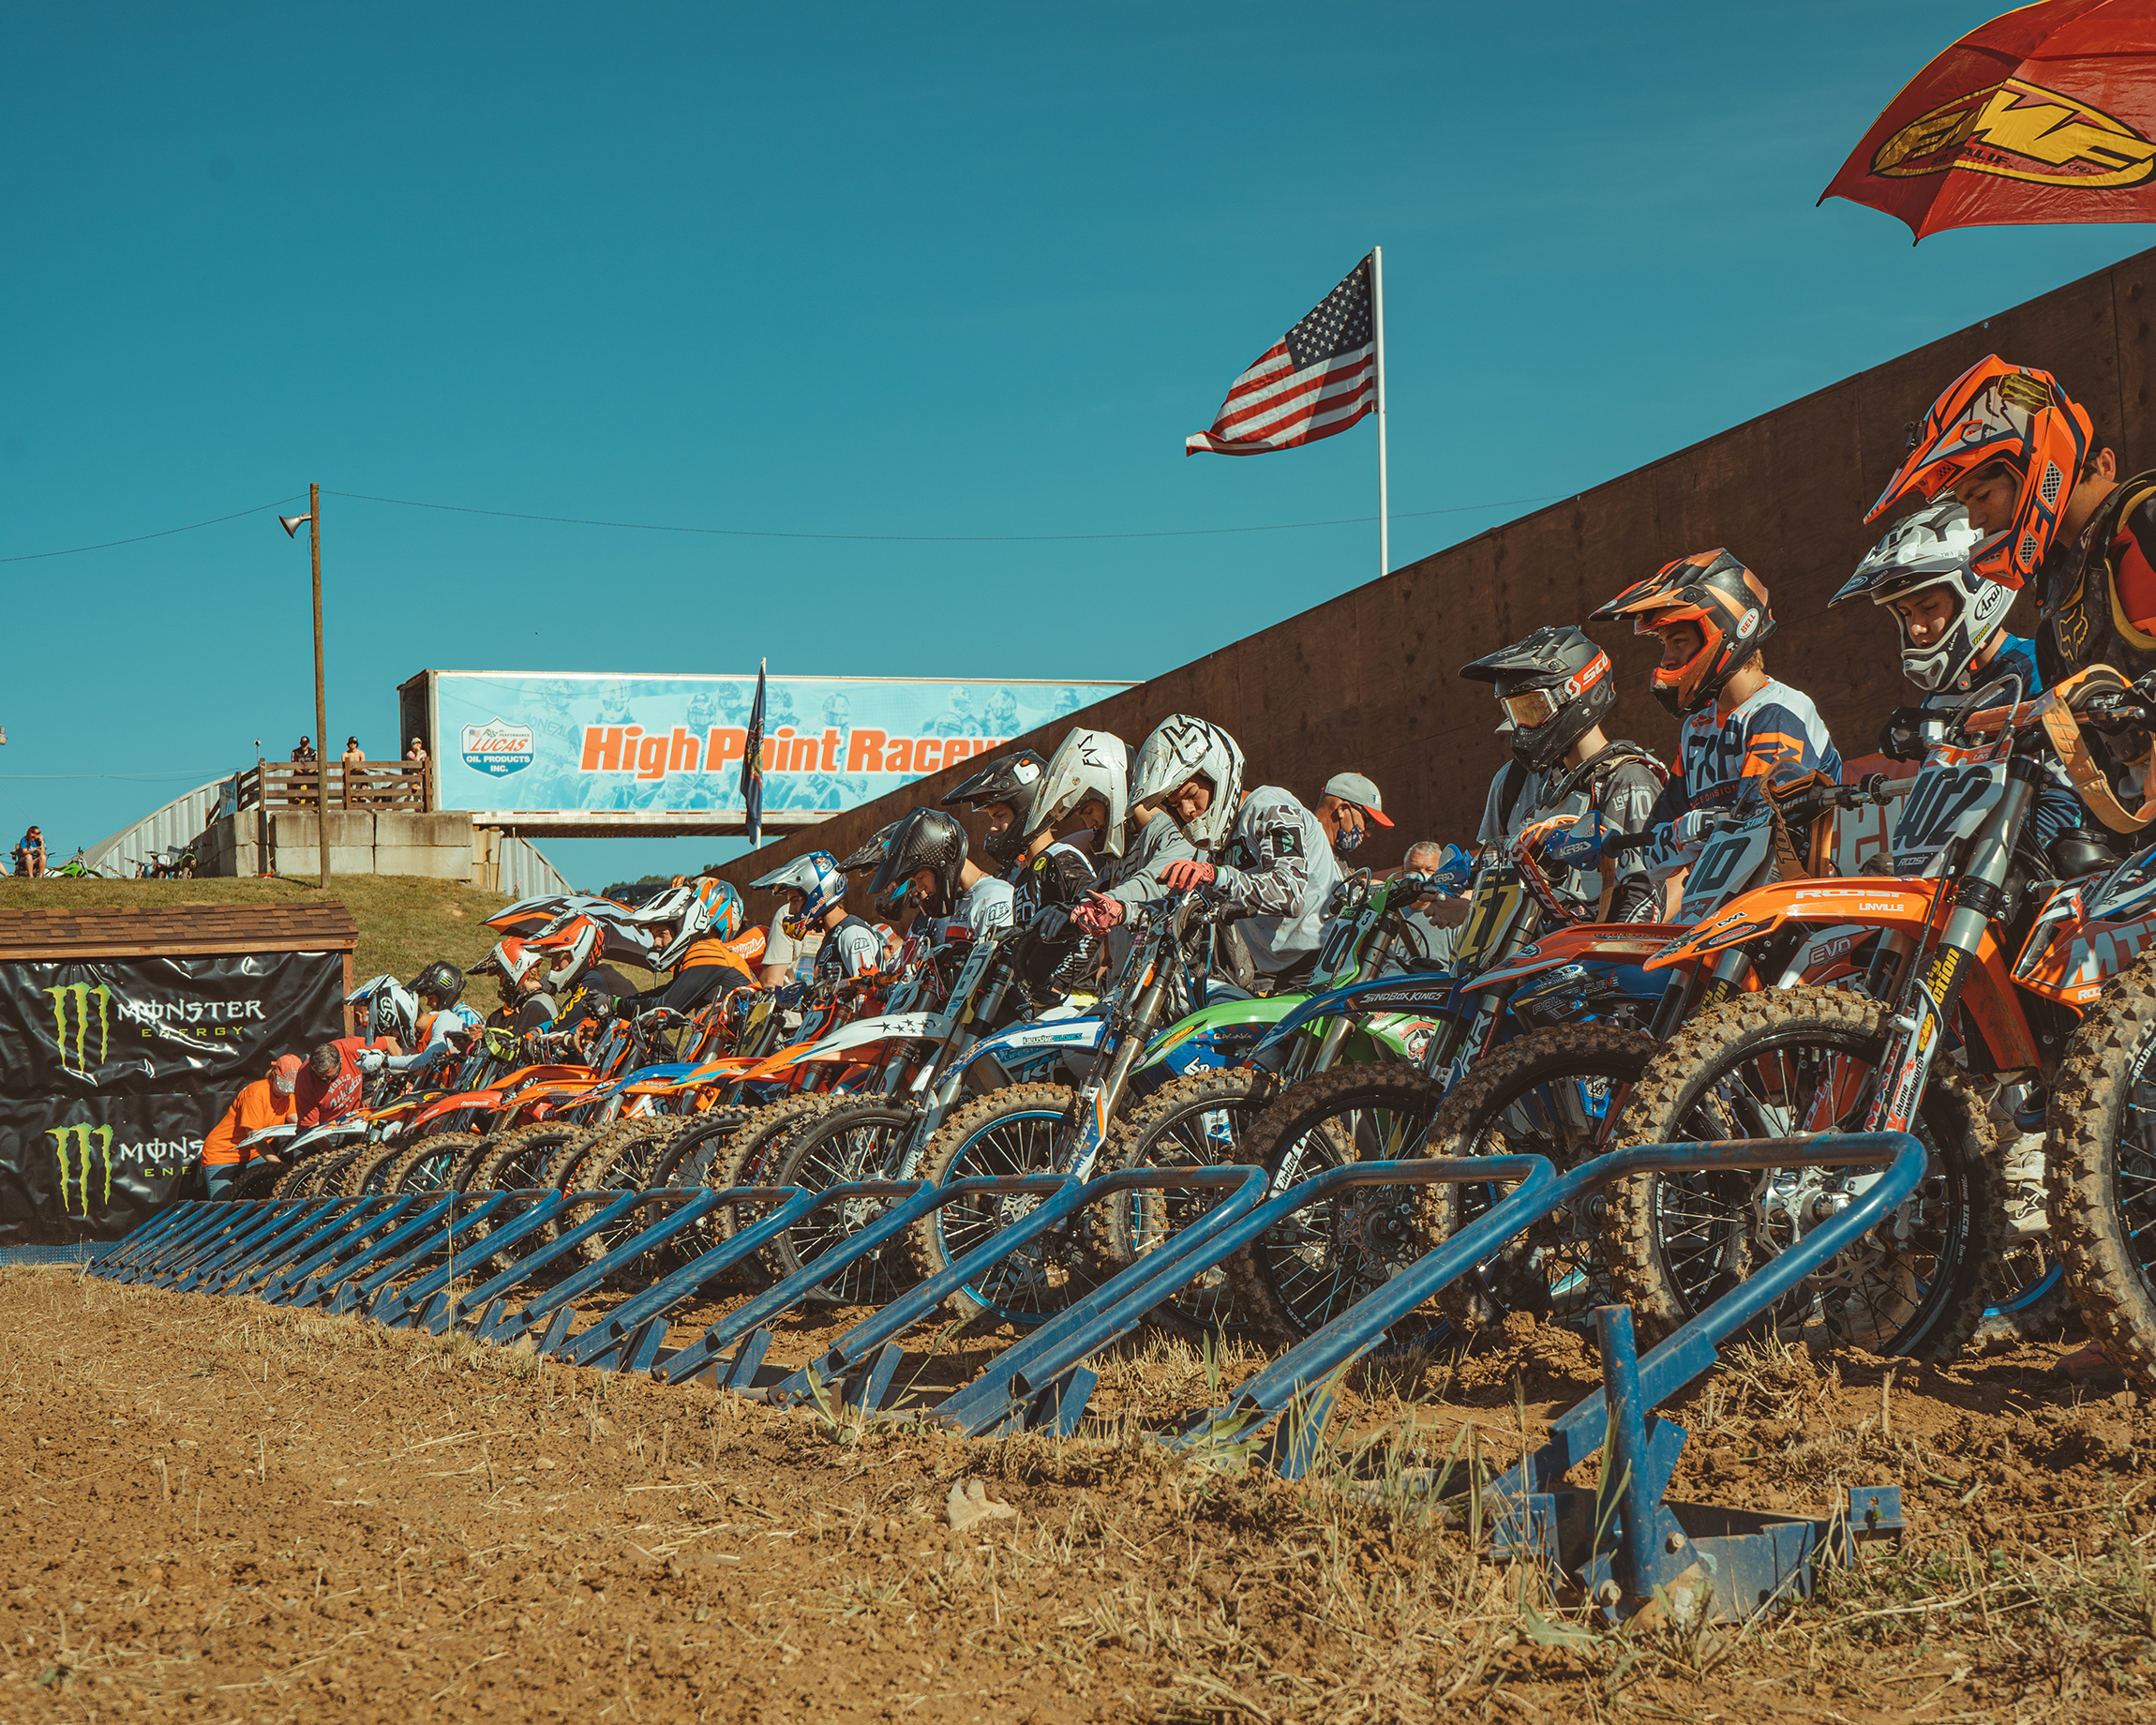 AMA Northeast Area Qualifier comes to High Point on the Road to Lorettas